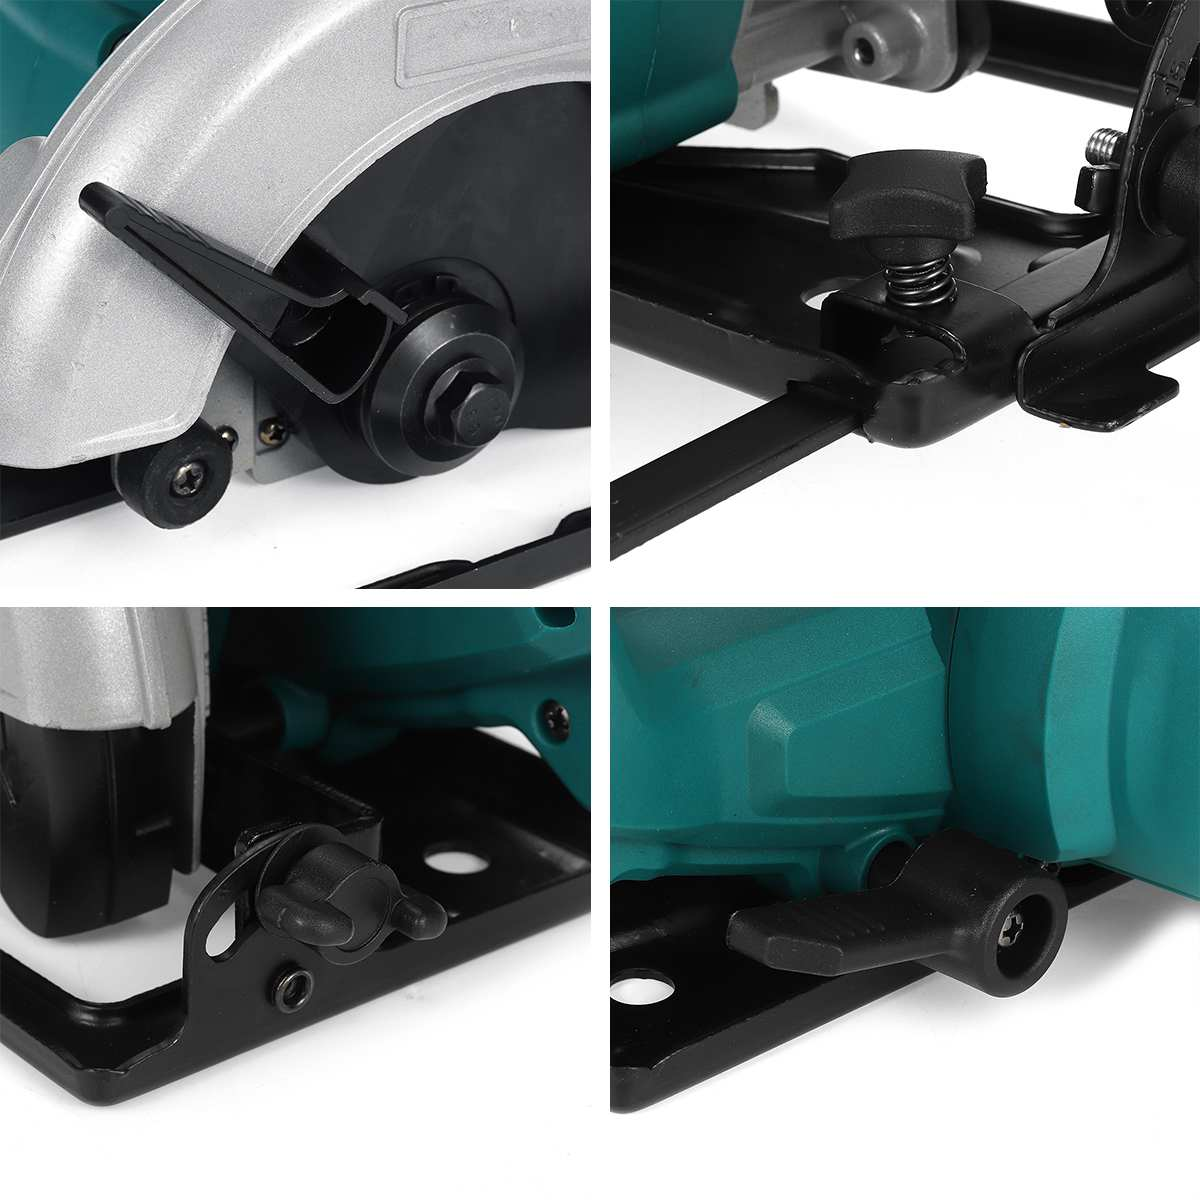 Tools : Drillpro 18V Cordless Electric Circular Saw for Makita 18V Battery 300W 152mm 6inch Blade Woodworking Cutting Tool